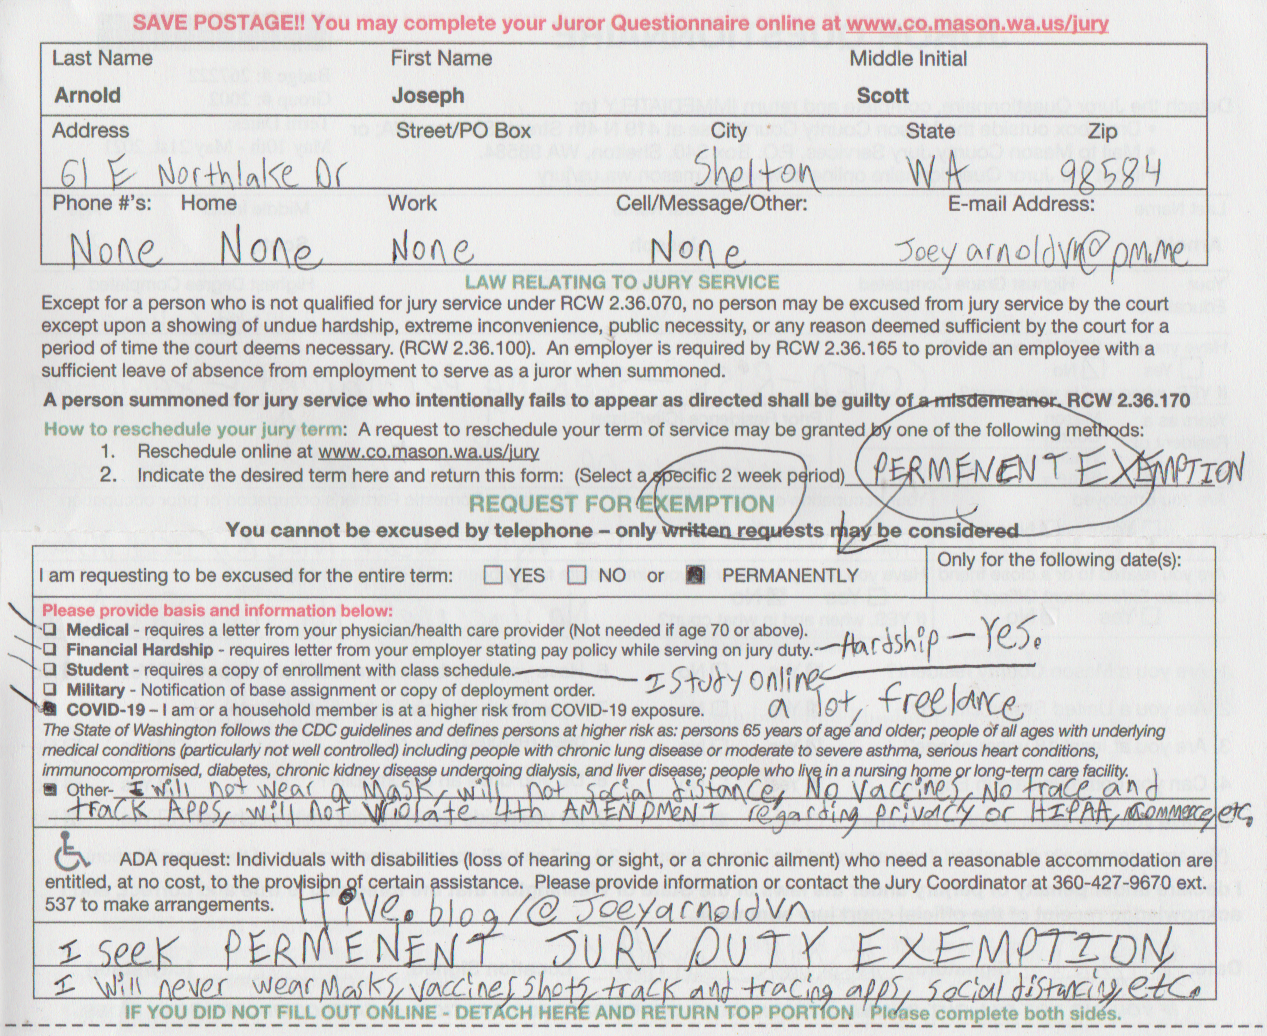 2021-04-11 - Sunday - 05:30 PM LMS - Jury Duty Permanent Exemption, 2nd time requested, 1st time in 2020, maybe not permanent exemption requested last time-2.png